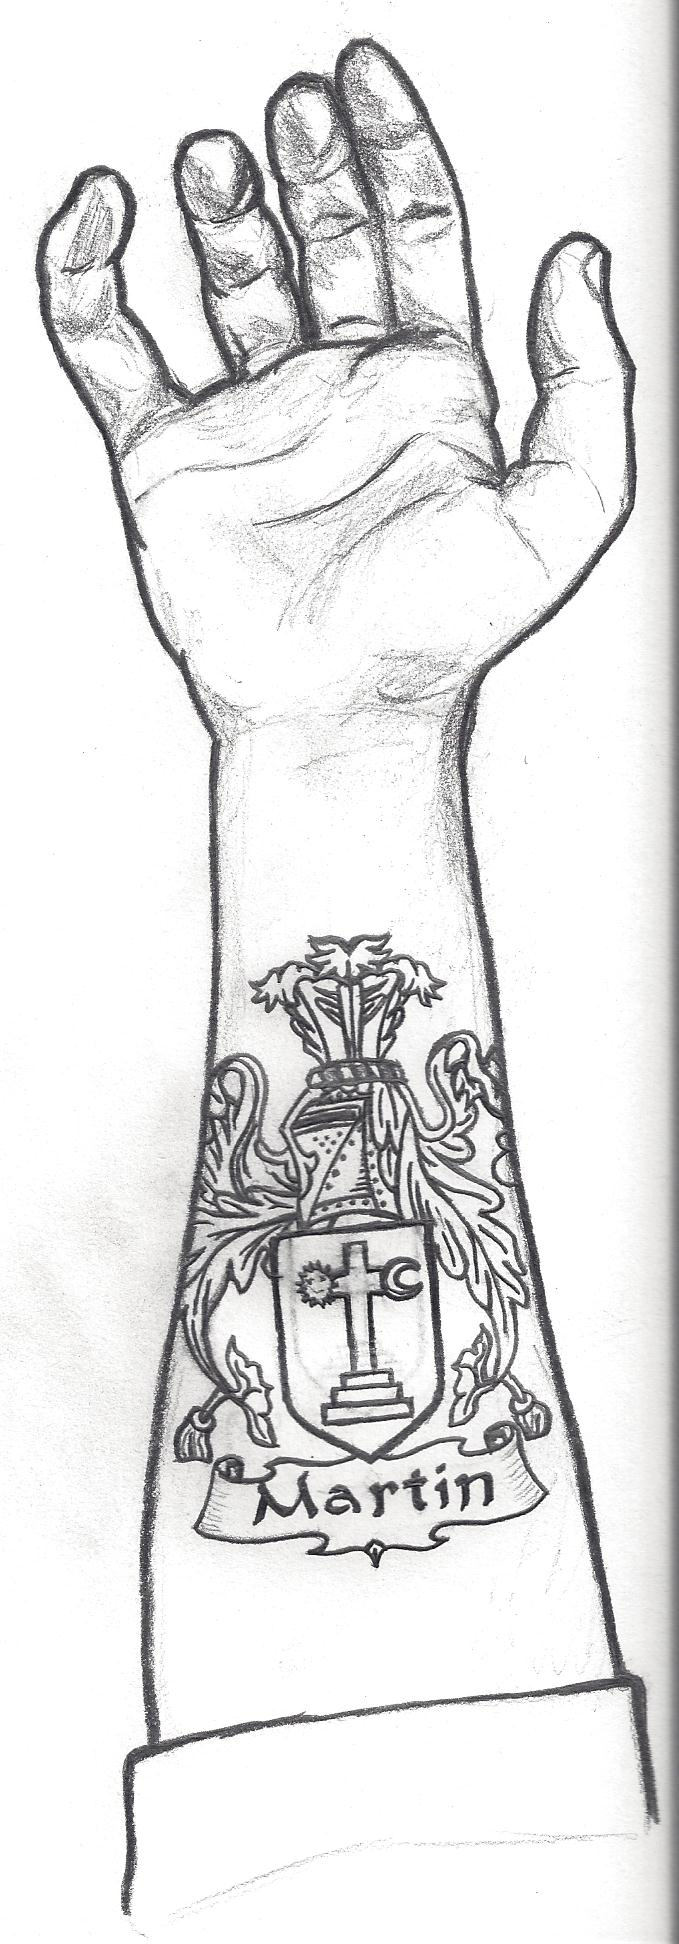 5 martin family crest tattoo by armenoc on deviantart martin family crest tattoo by armenoc buycottarizona Images